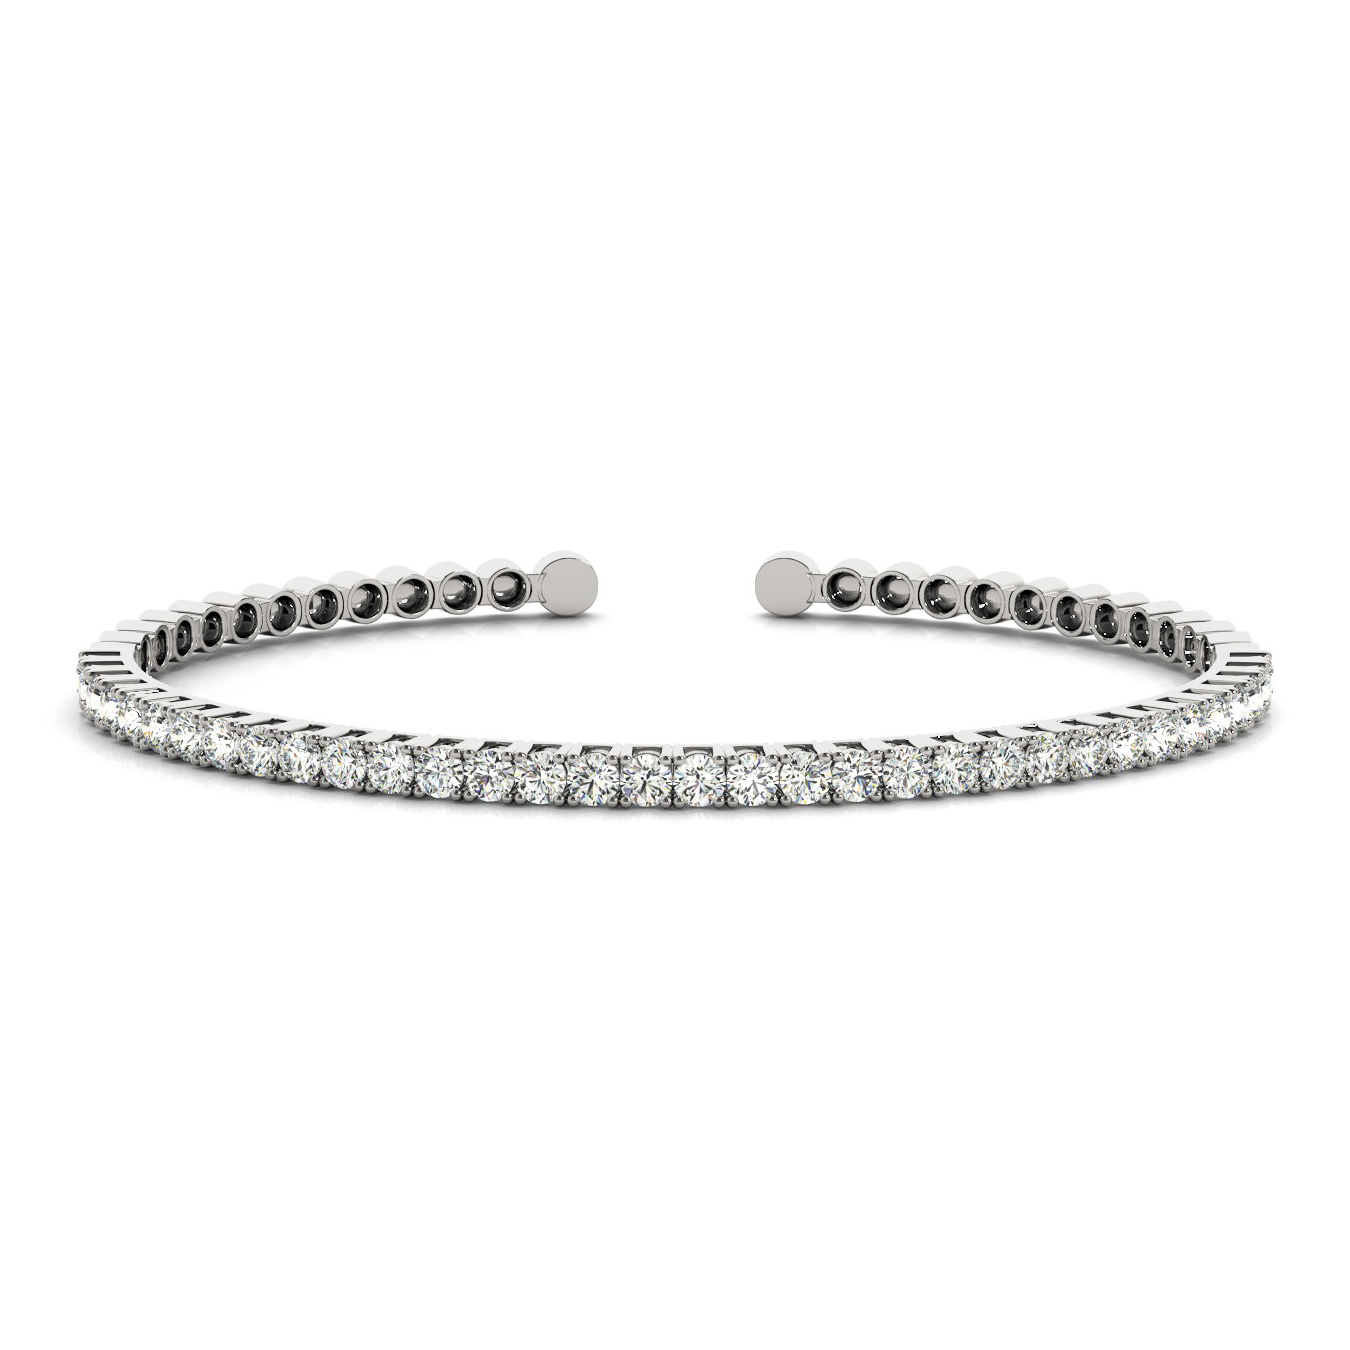 Semi-Flexible Round Diamond Tennis Cuff Bracelet 1.00 Carat 14K White Gold